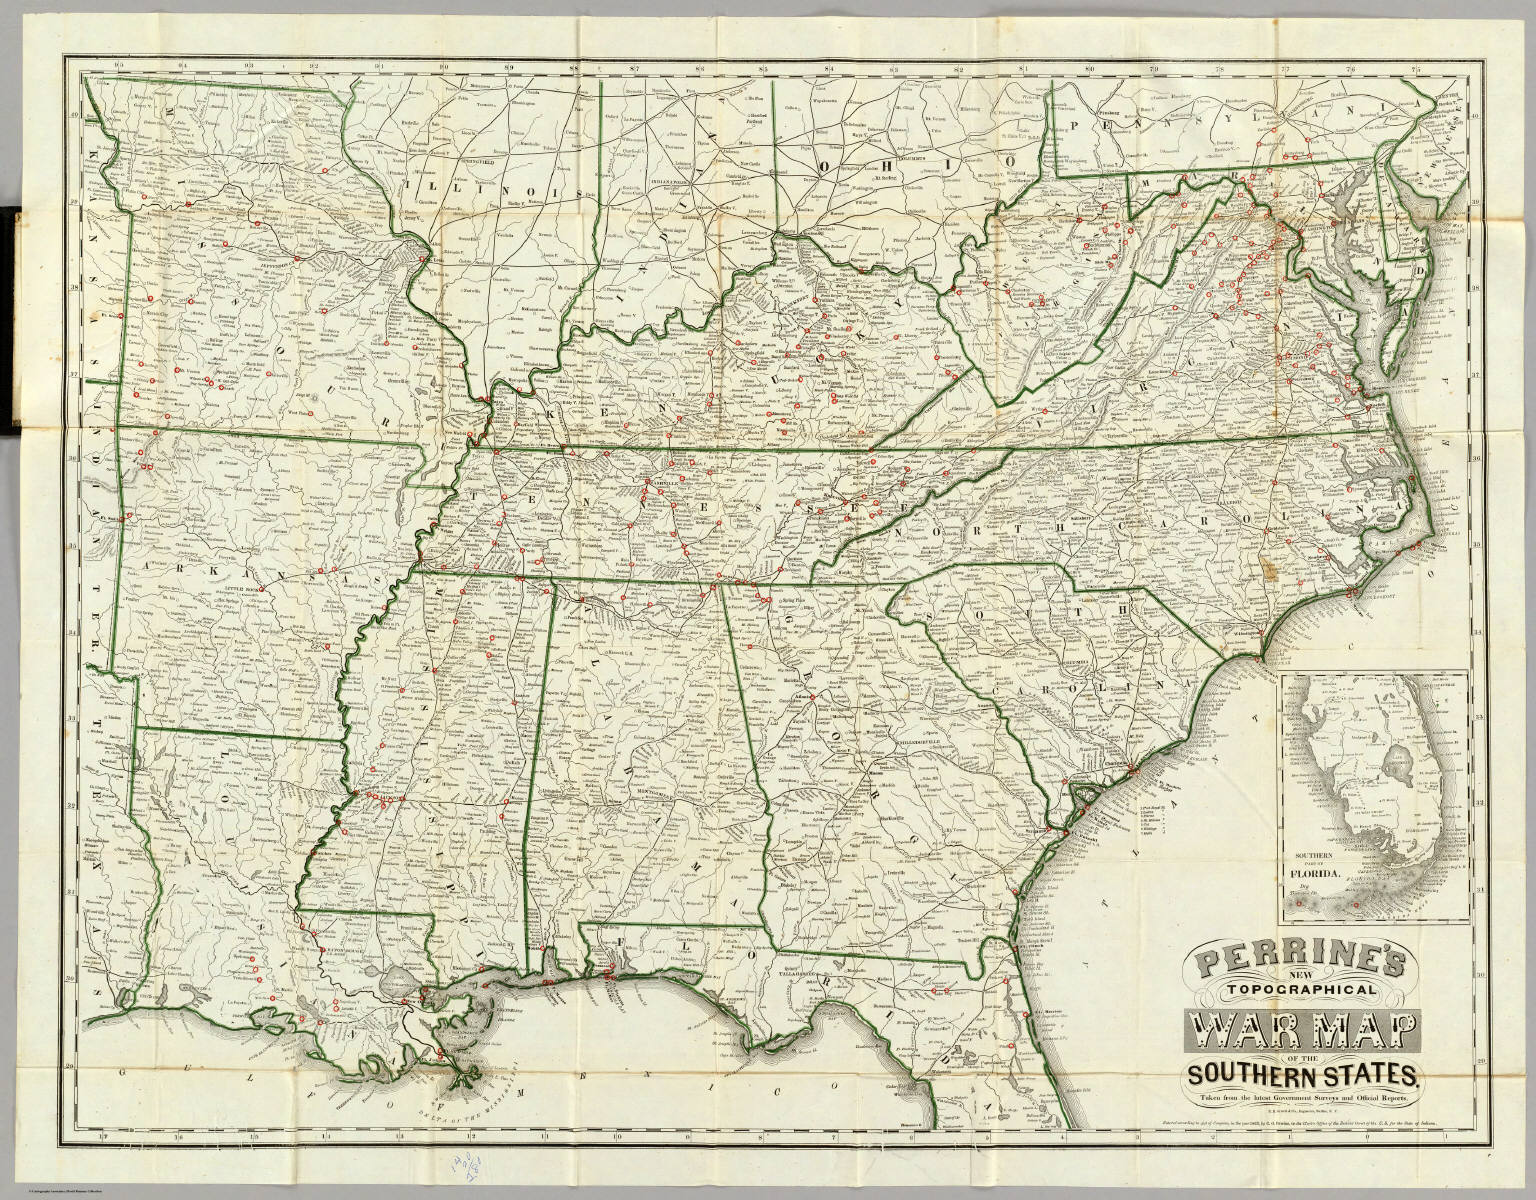 Southern State Map.Perrine S New Topographical War Map Of The Southern States David